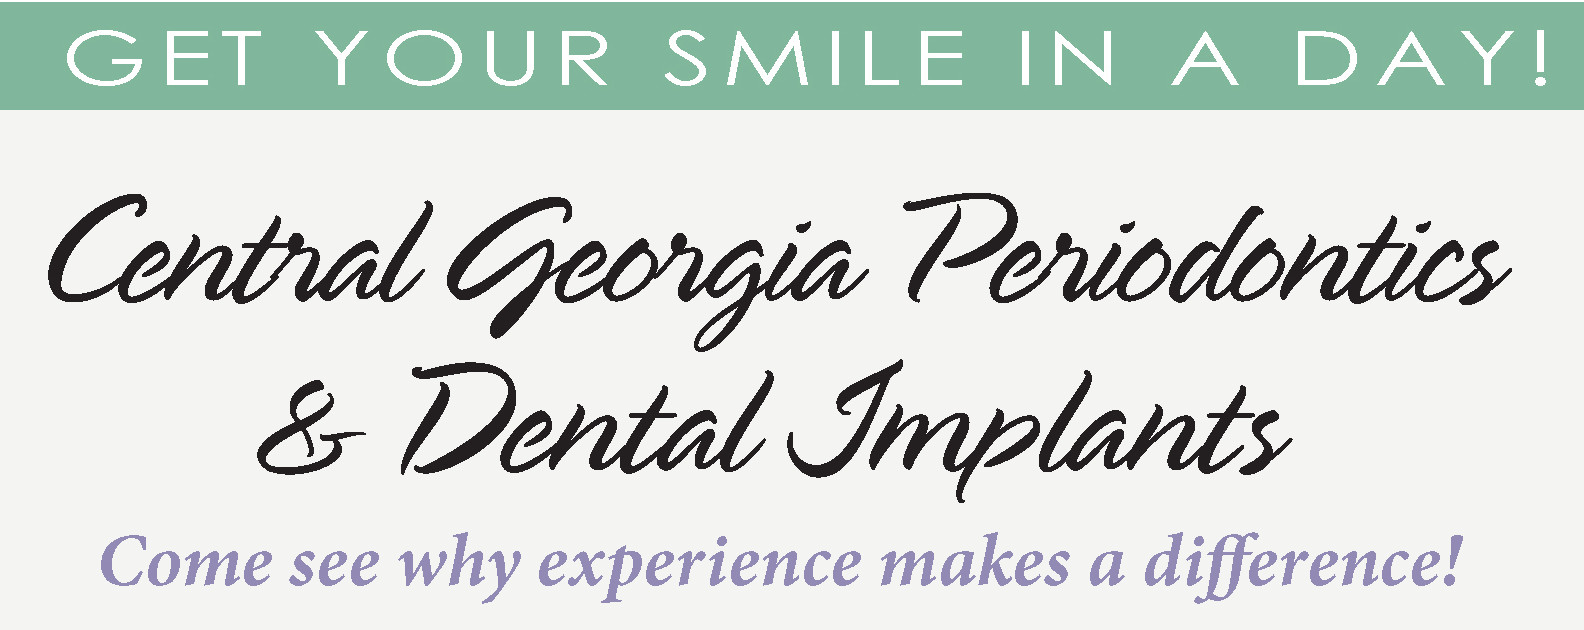 Smile In A Day – Central Georgia Periodontics and Dental